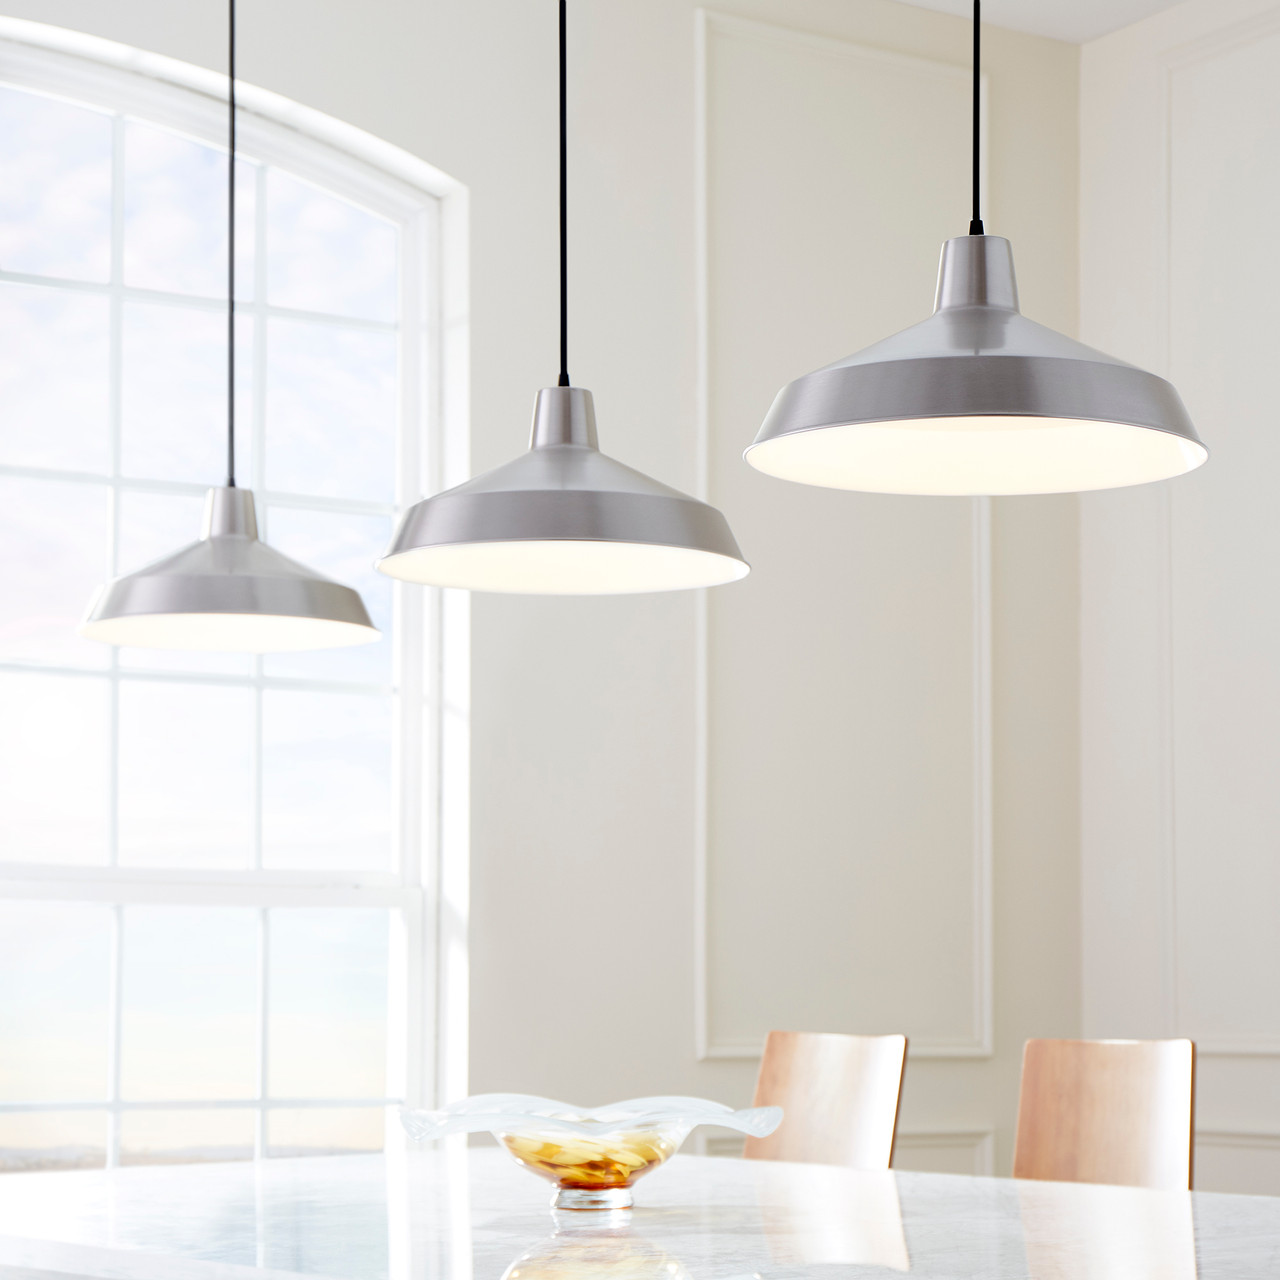 One Light Pendant by Quorum, Satin Nickel finish, 120V, 100W, UL Listed (6822-65)